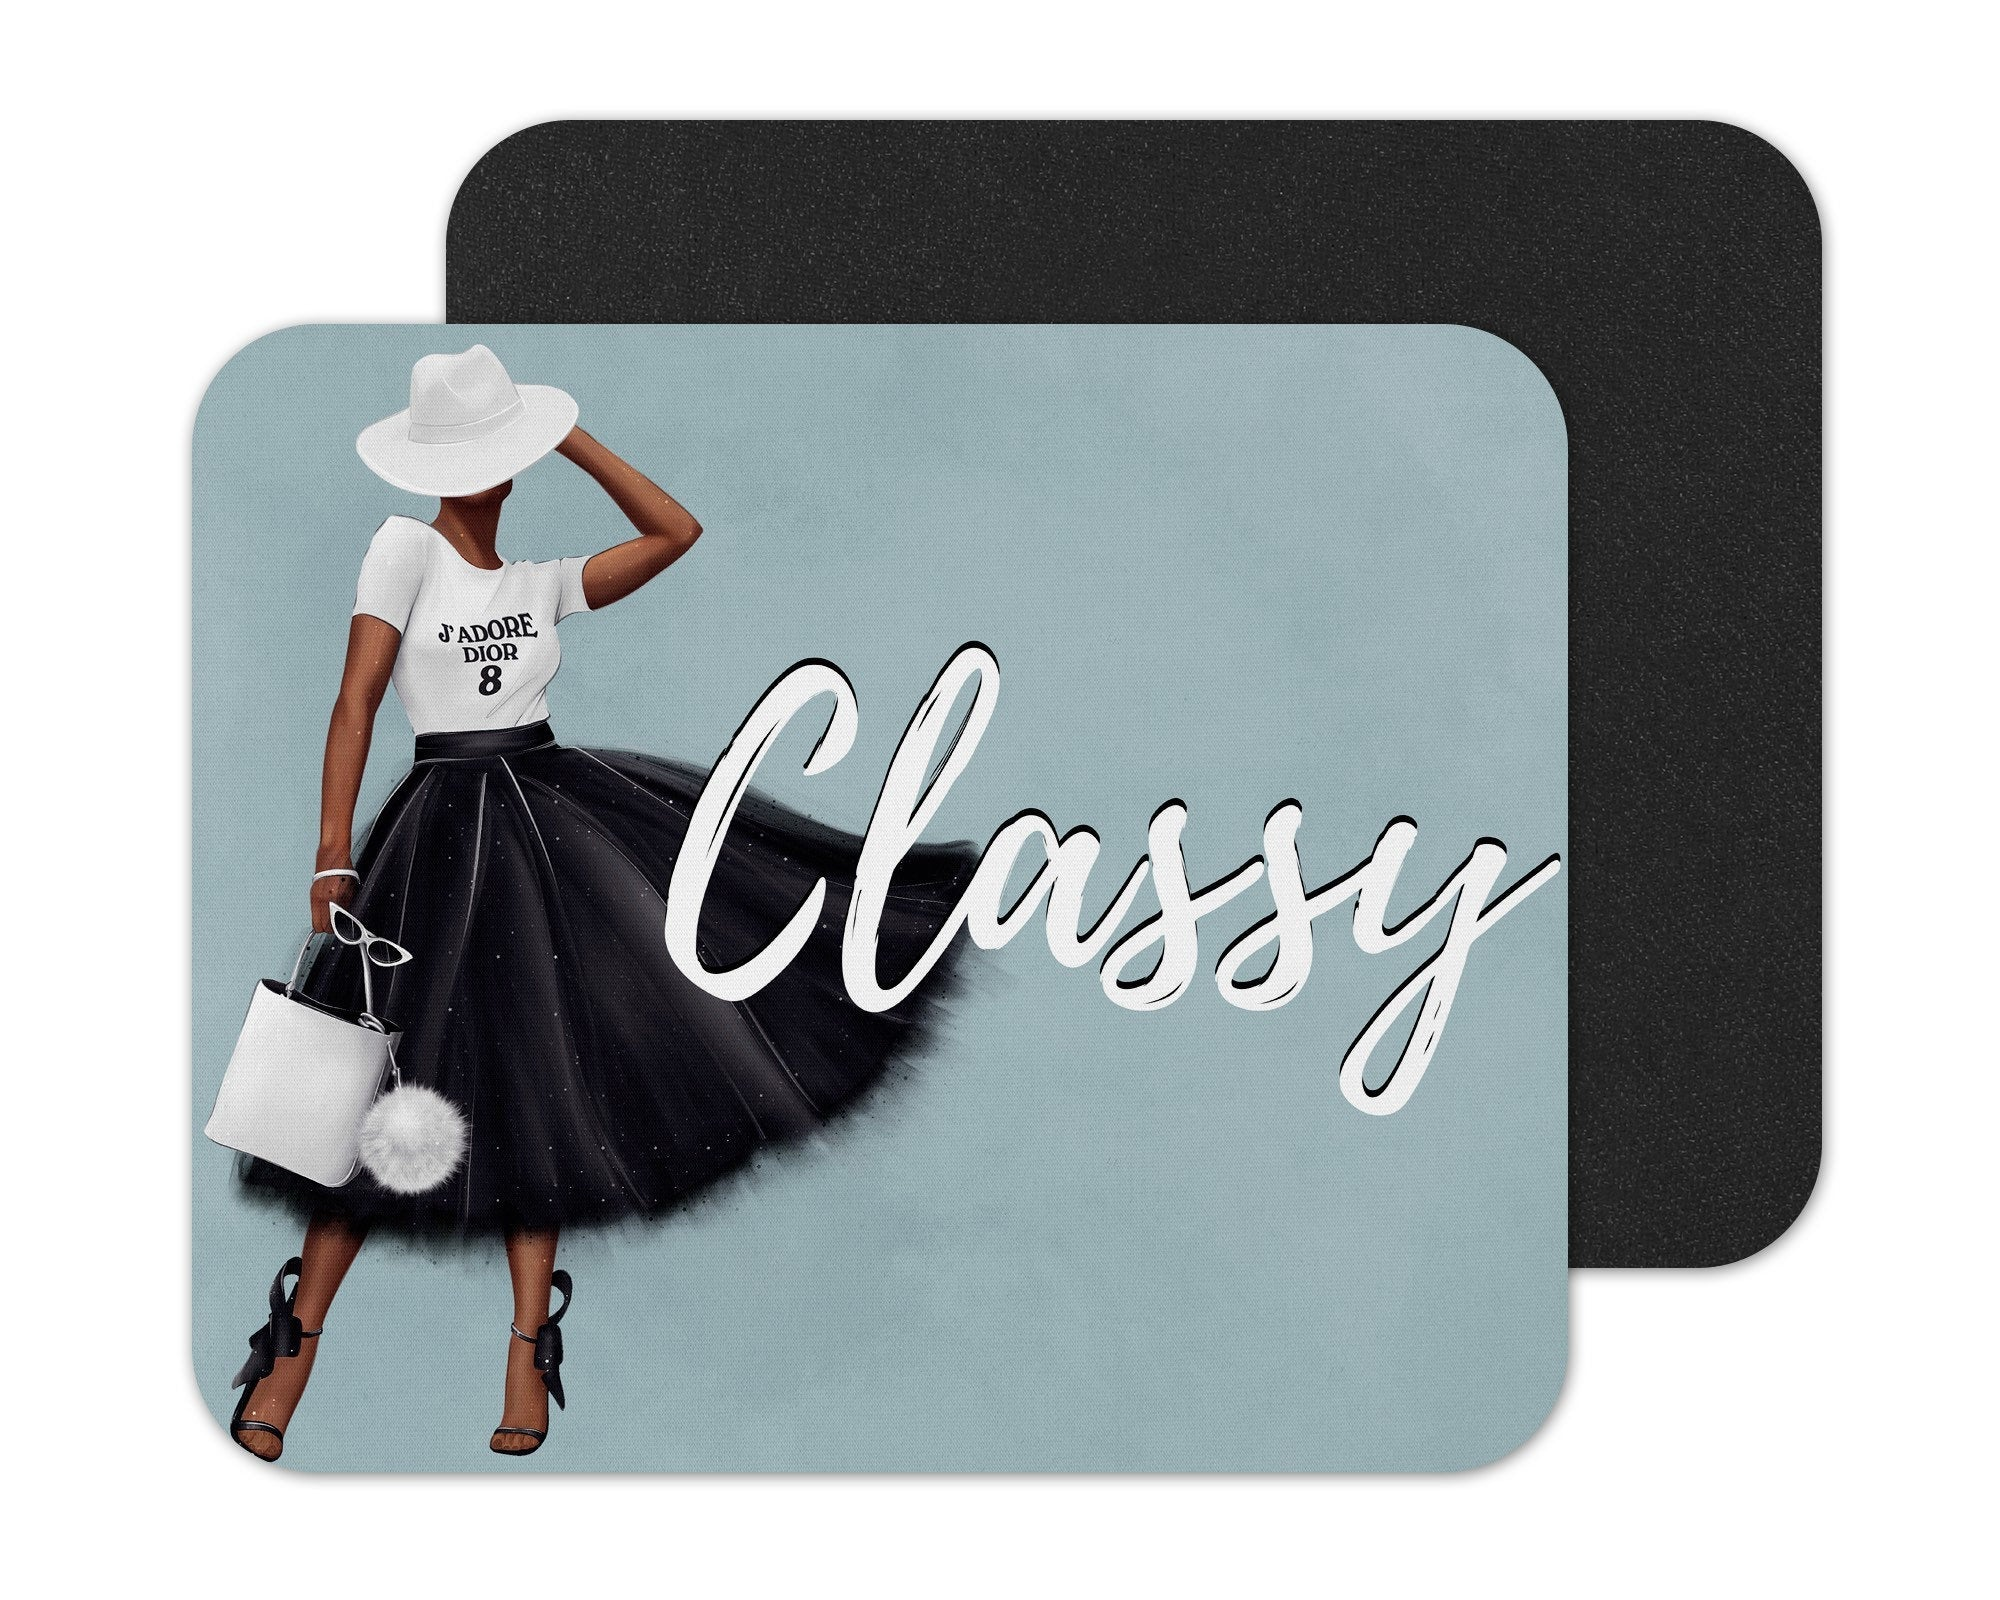 Black Woman Classy Mouse Pad